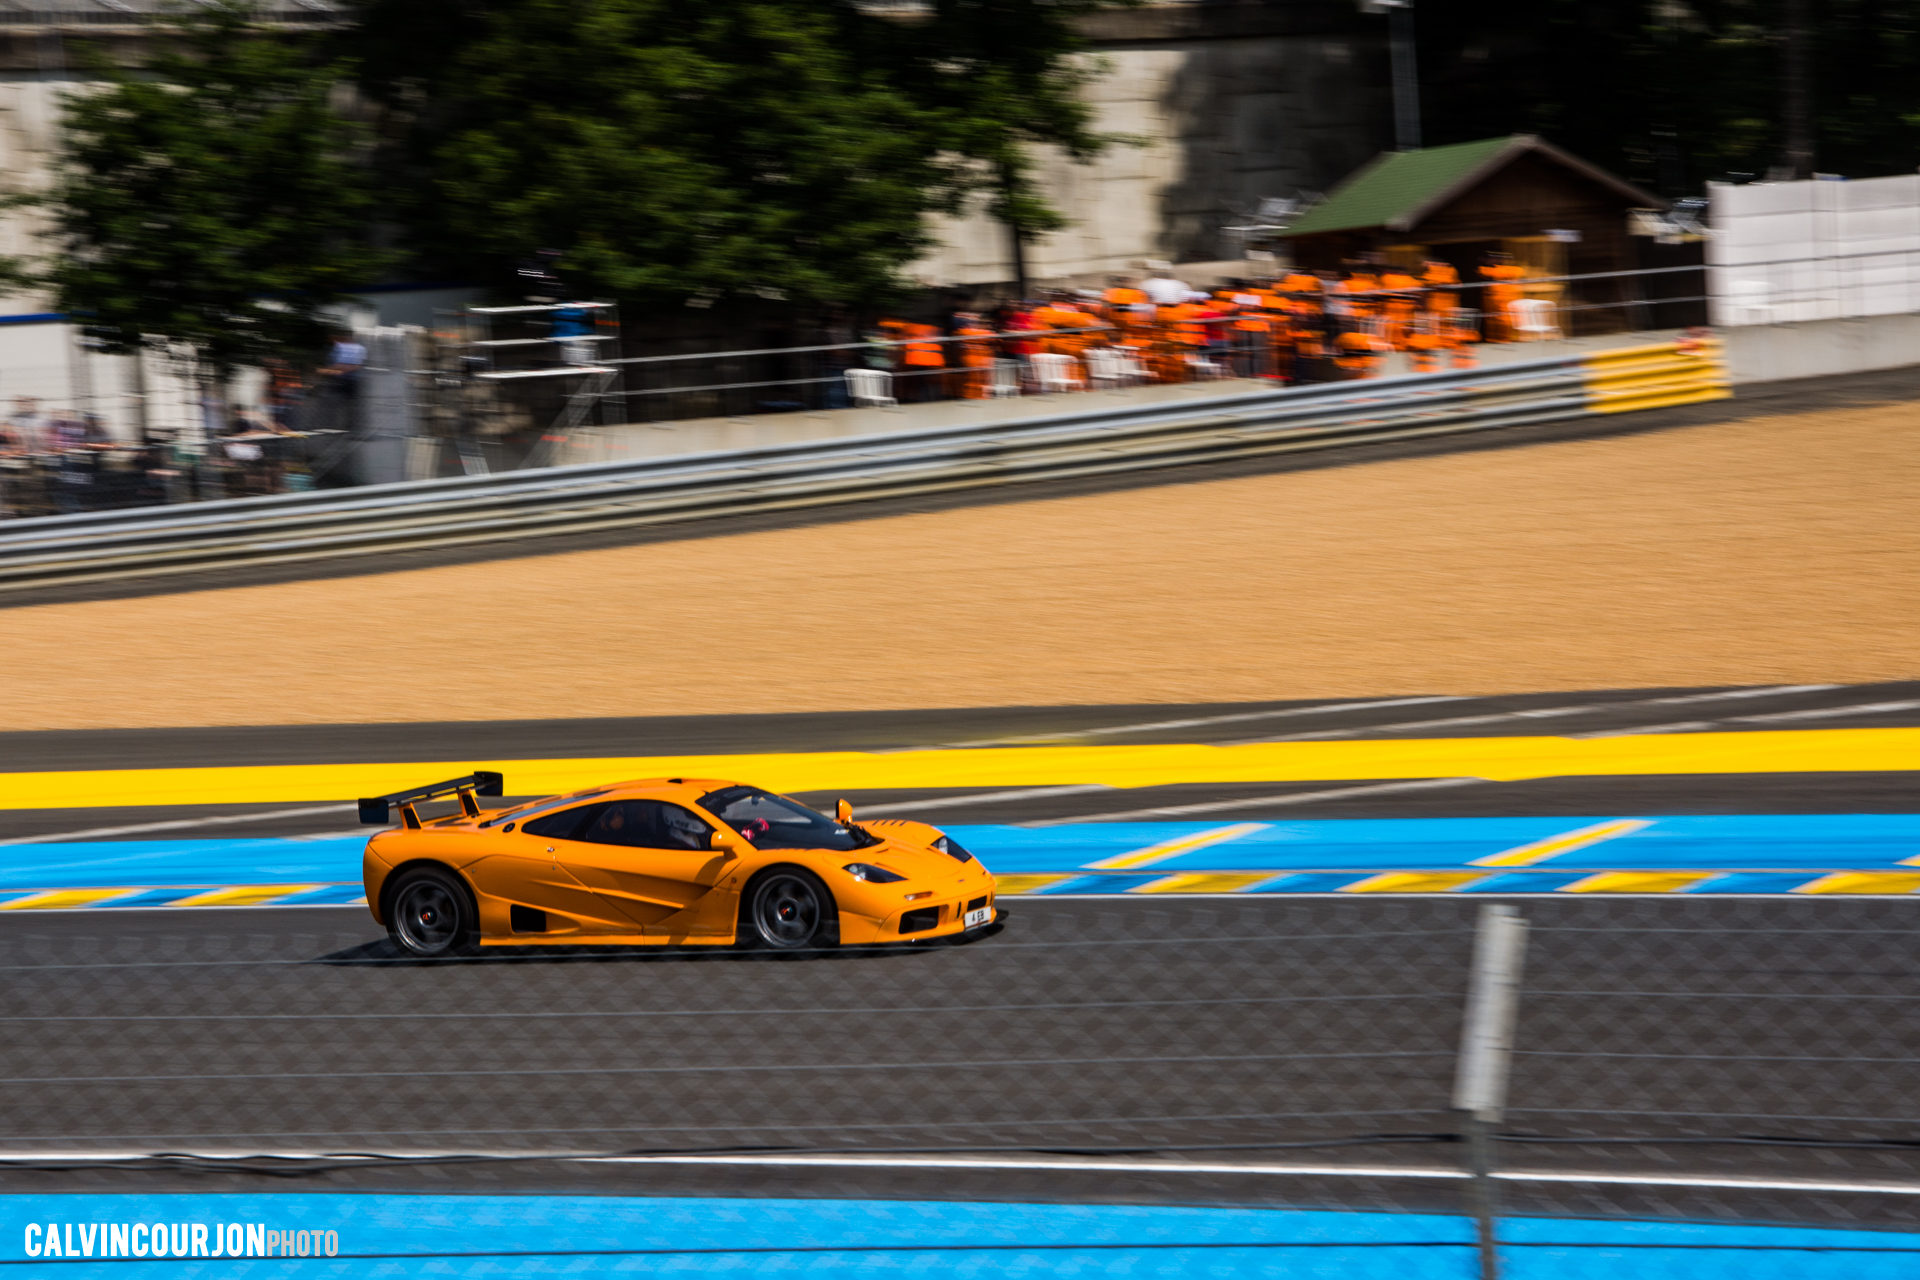 McLaren F1 GTR (1995) sur circuit au Mans - 2015 - photo Calvin Courjon